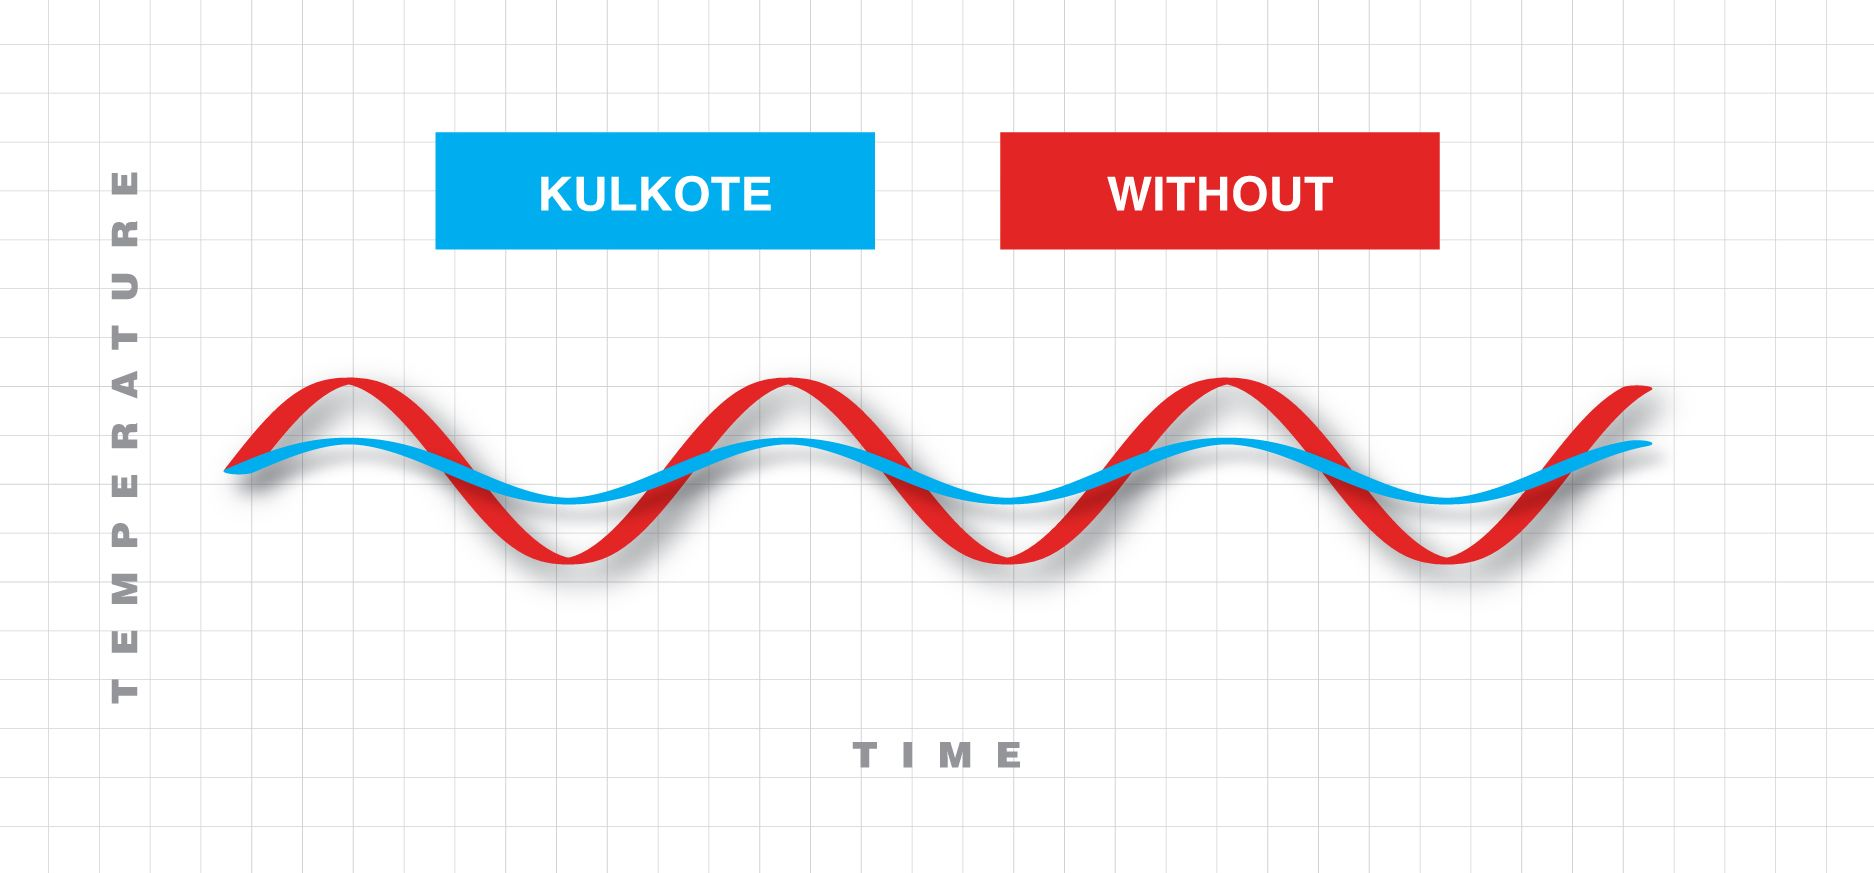 KulKote Temperature regulation